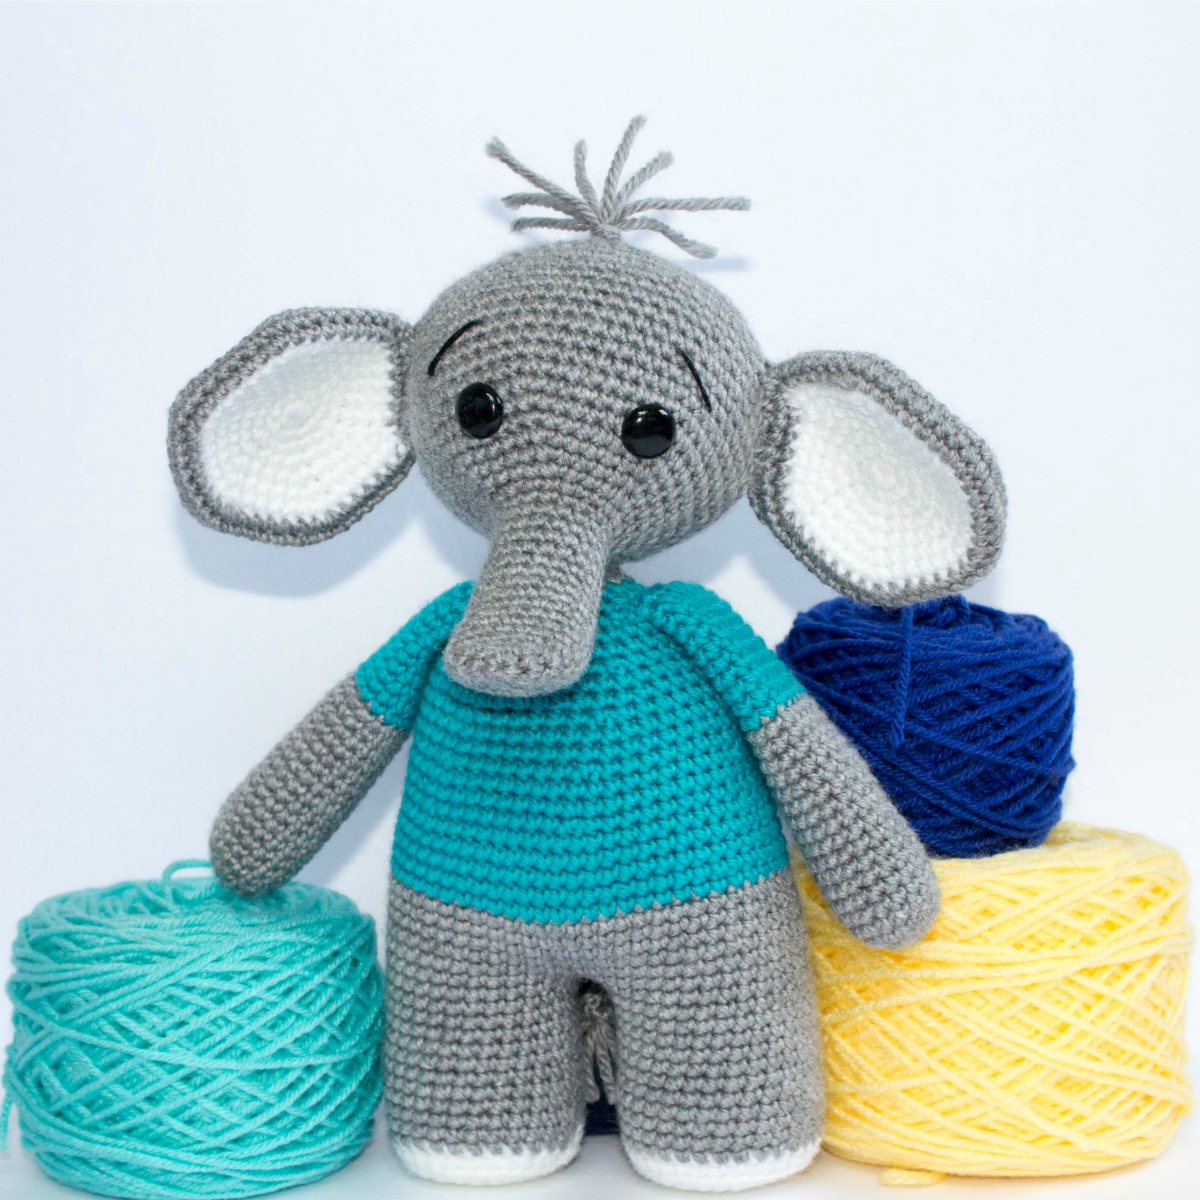 The Friendly Elephant Crochet A Long - thefriendlyredfox com